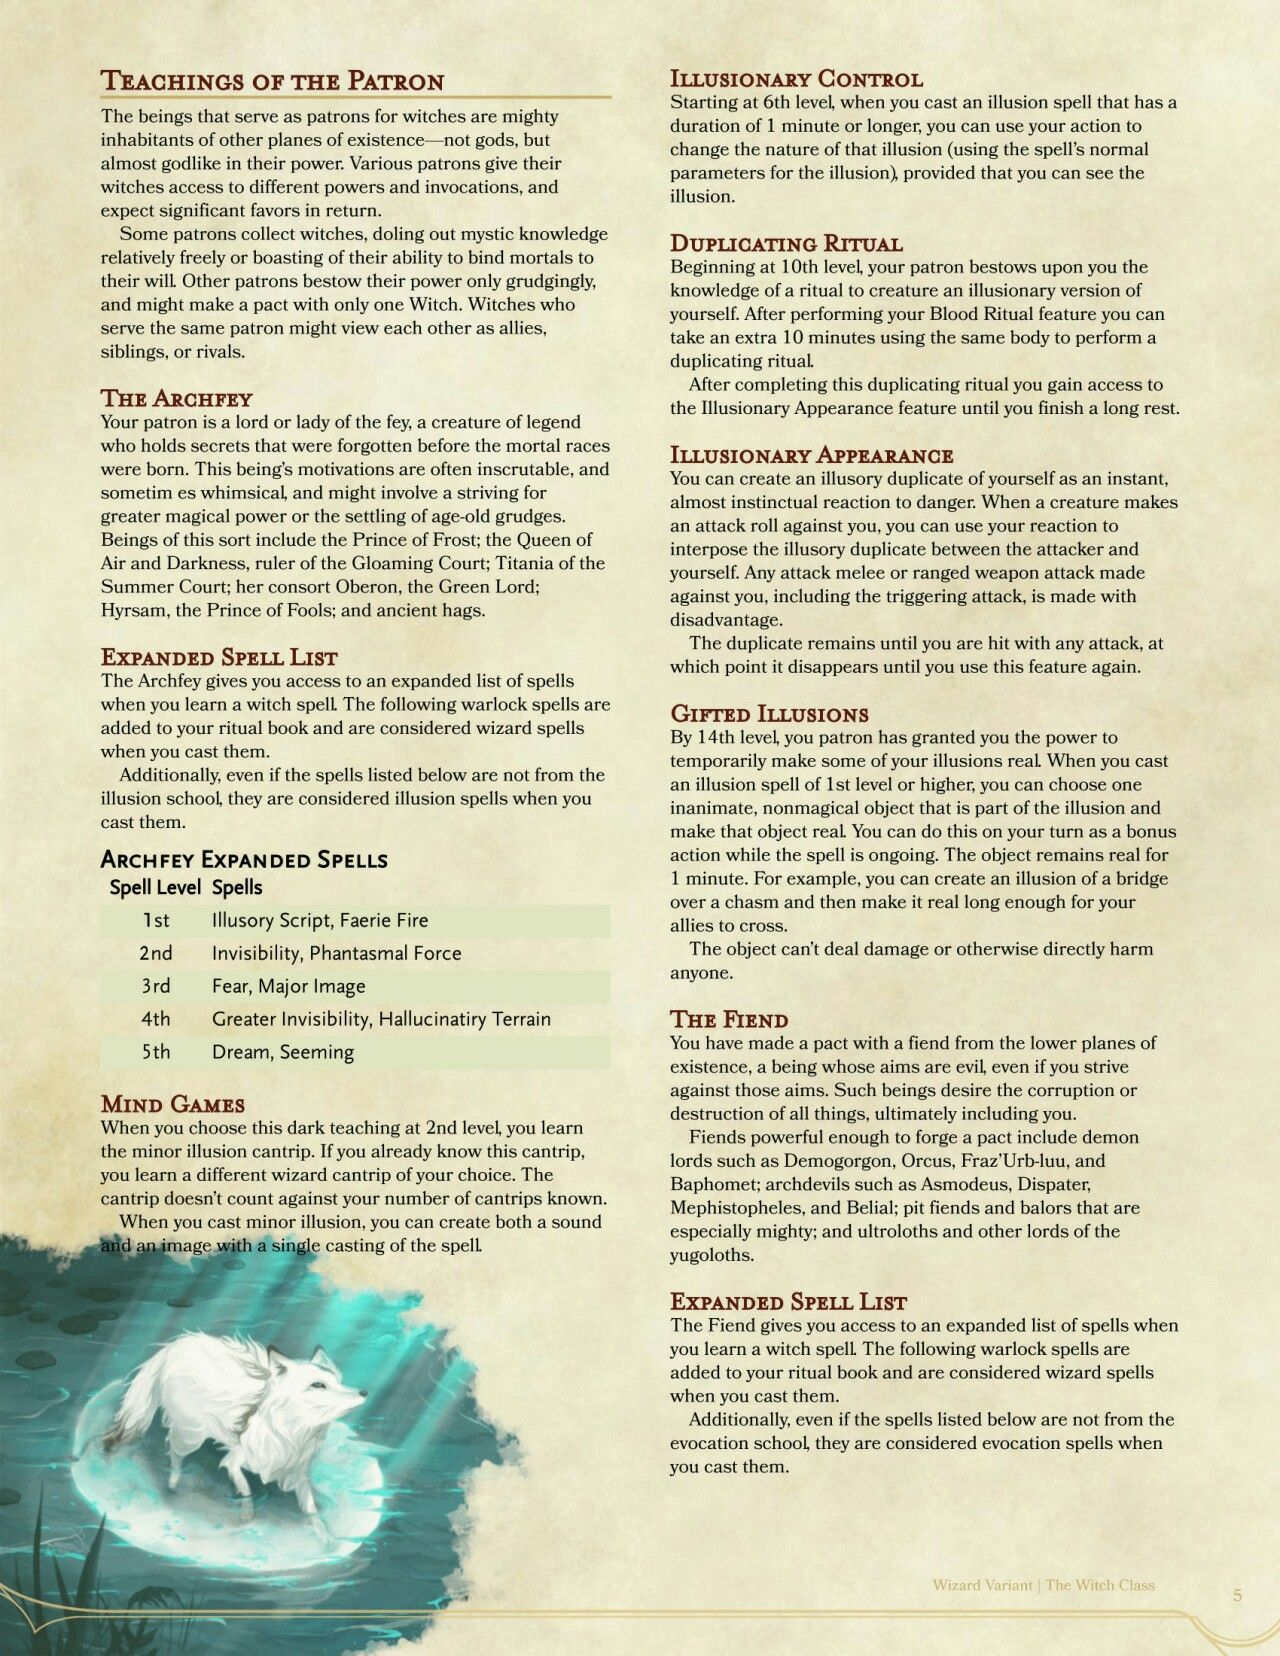 Pin by WOW Somebody actually on dungeons and dragons | Dnd